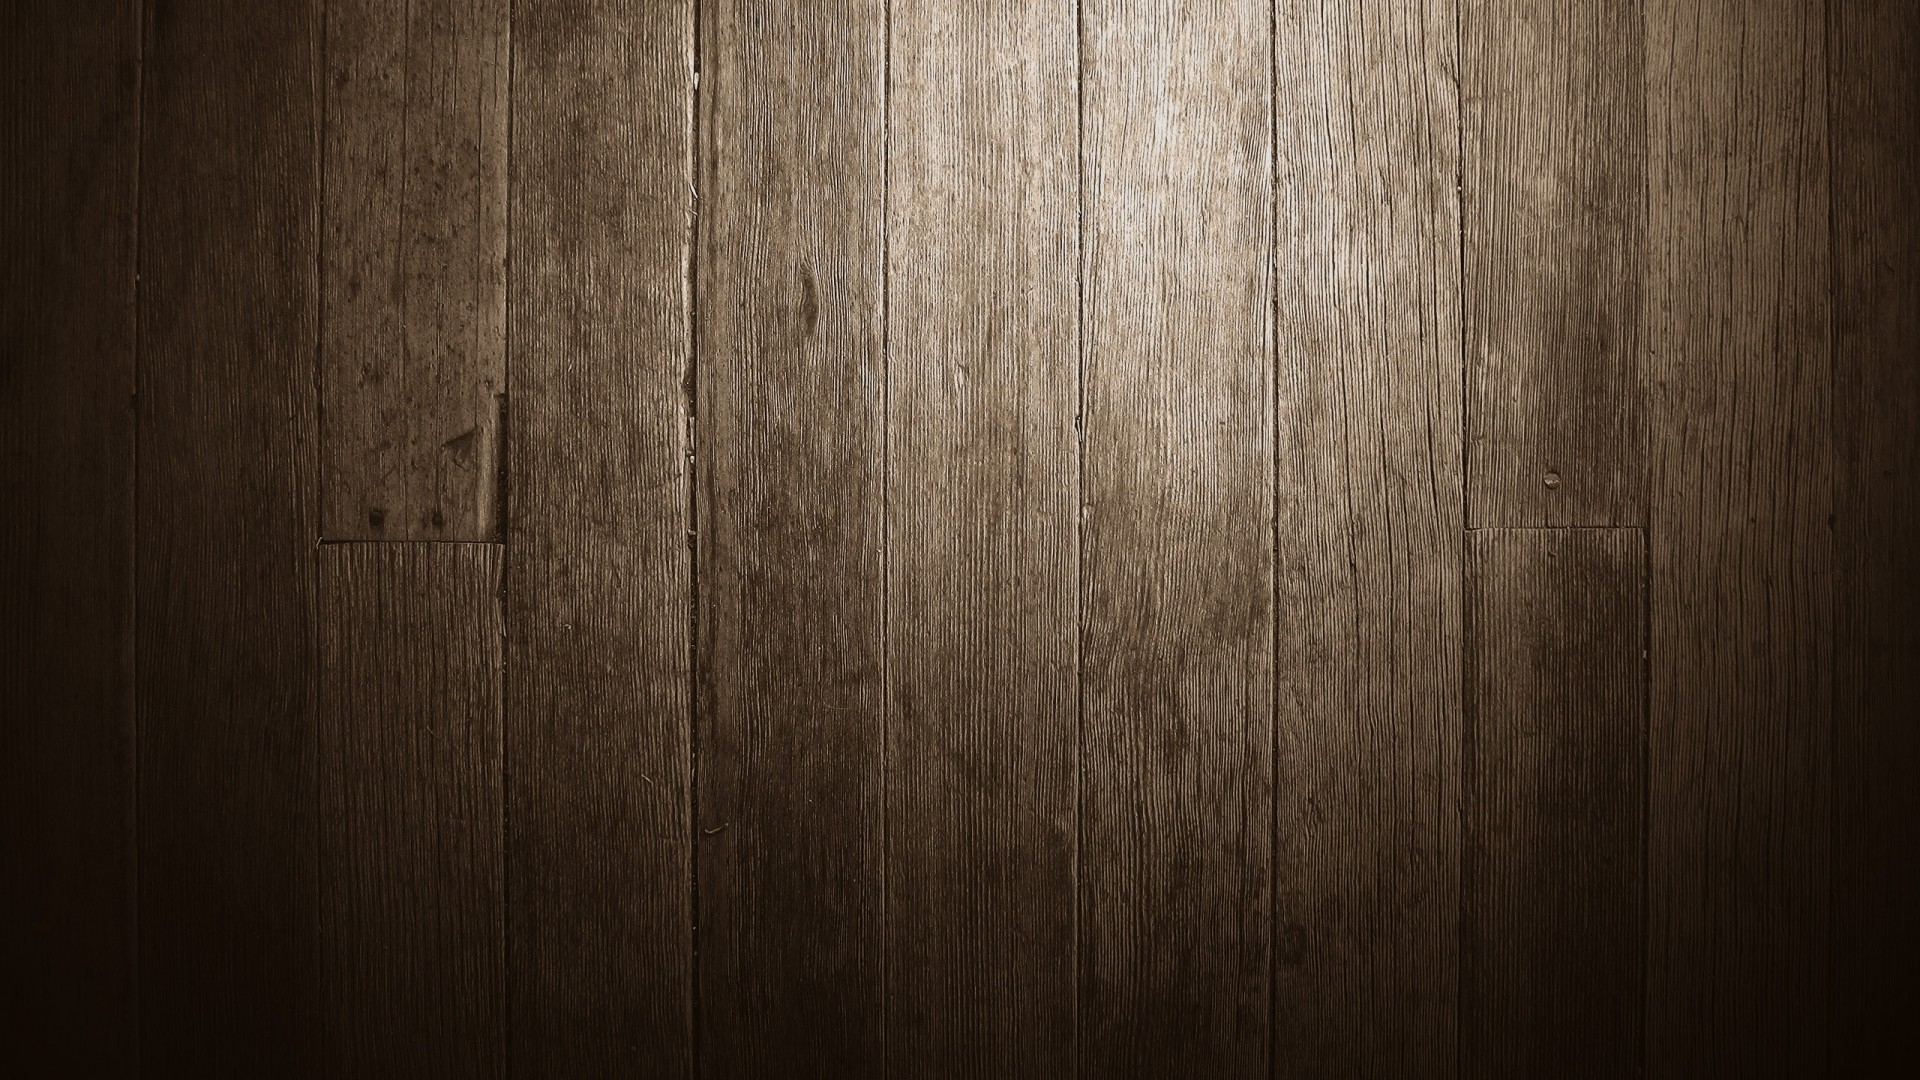 1920x1080 Light wood wallpapers backgrounds HD.